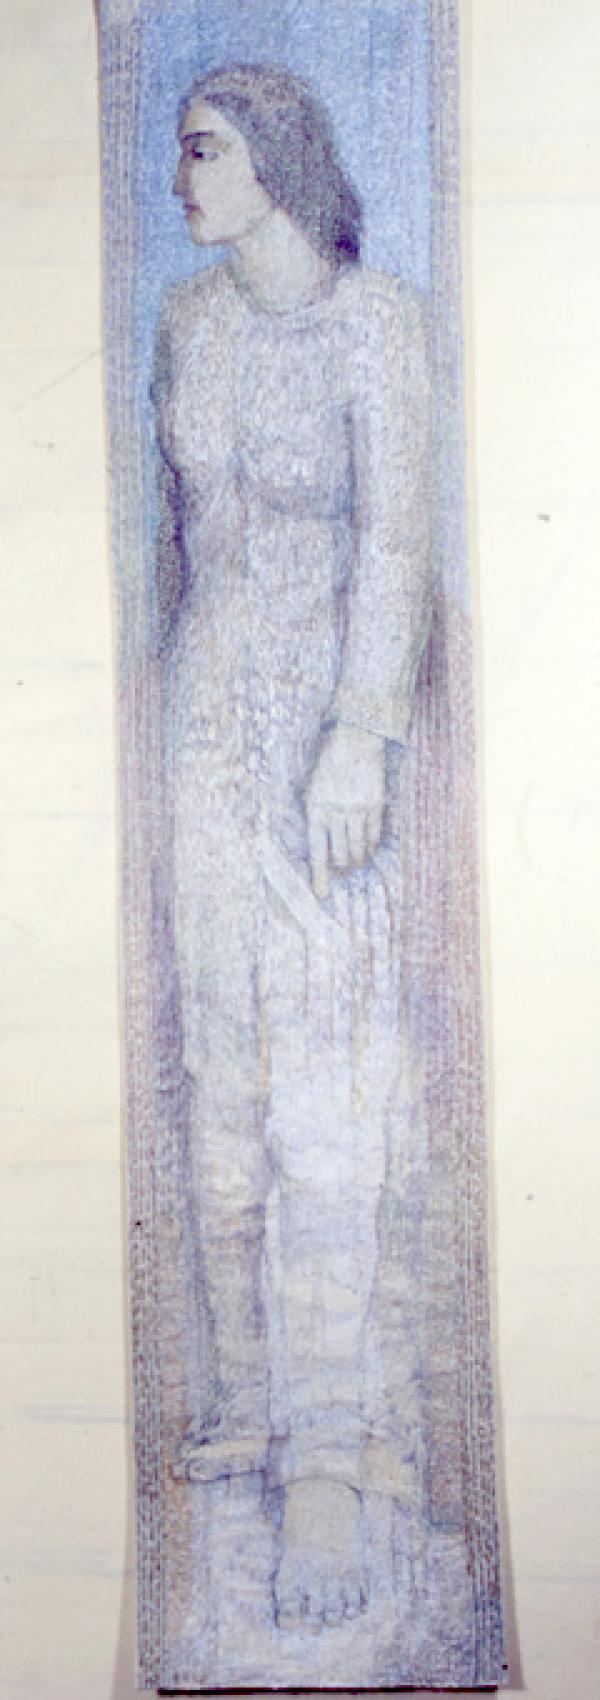 Lot's Wife, embroidery, 2007, Audrey Walker. Museum number T.22-2007